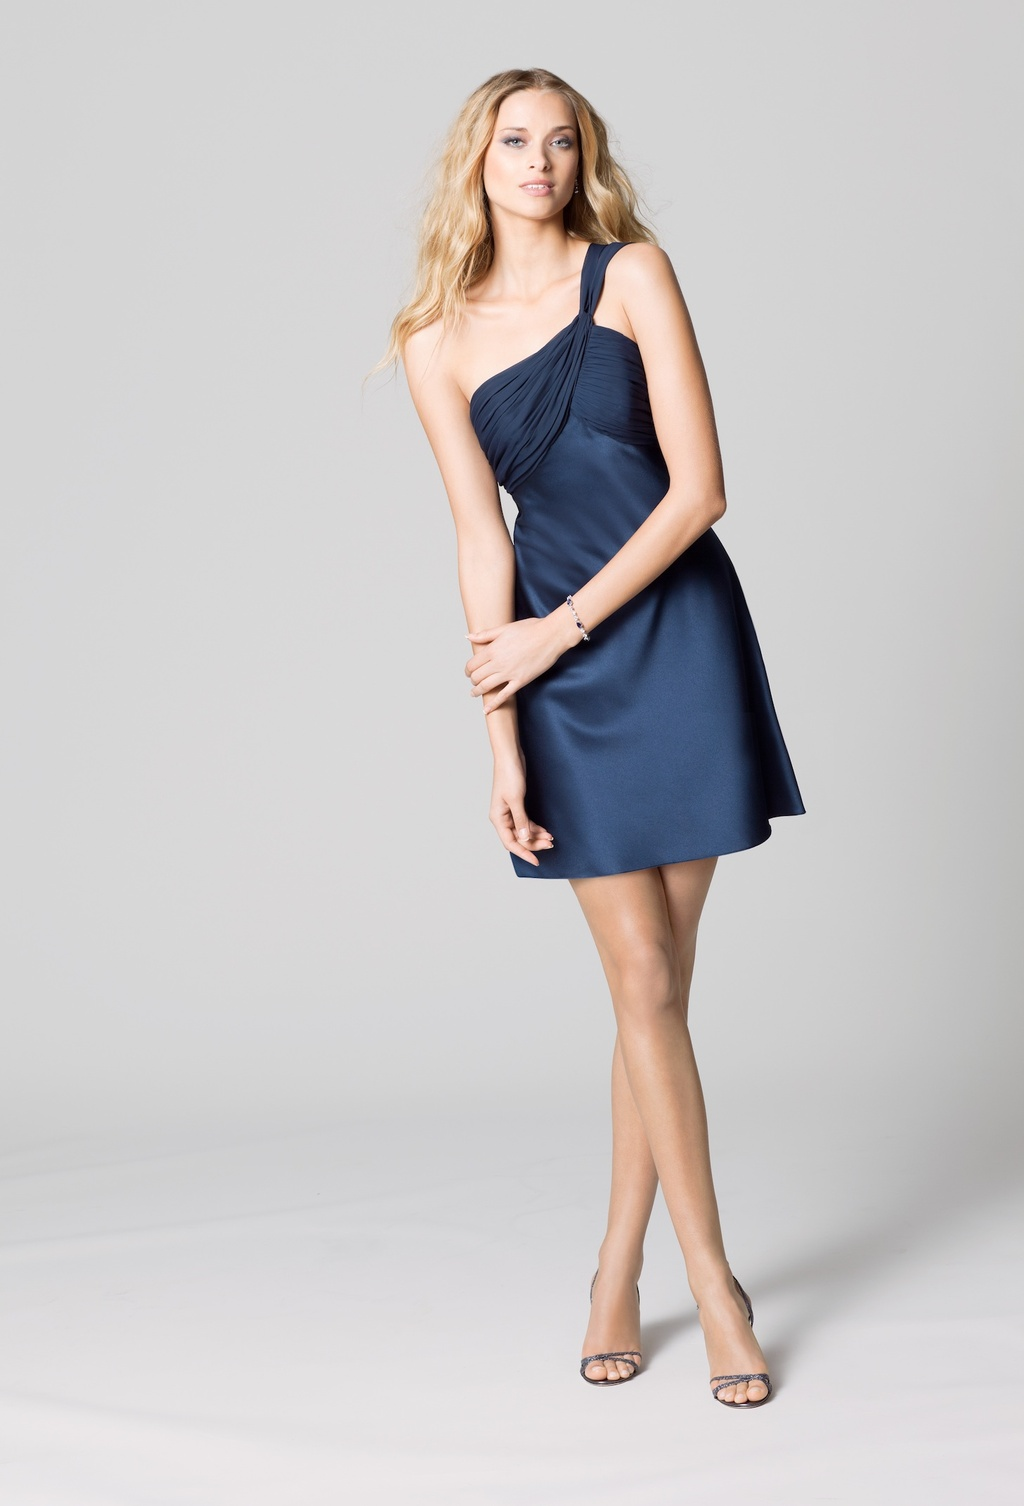 Affordable-bridesmaids-dresses-fall-2012-wtoo-by-watters-bridal-party-navy-shimmer-one-shoulder.full